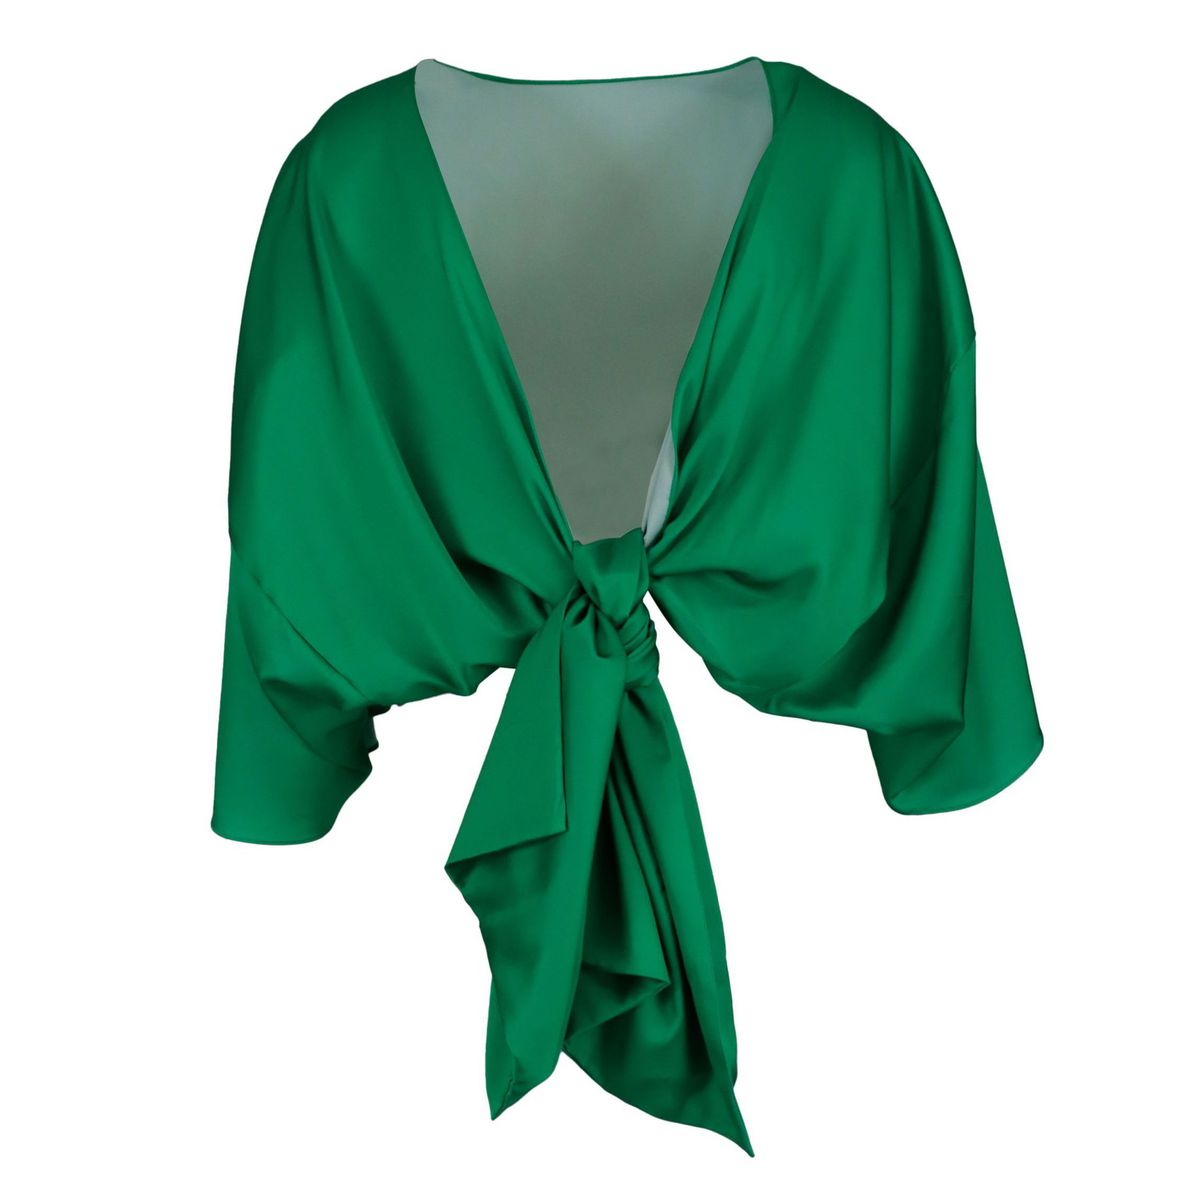 Satin top with rear knot closure Green GIADA CURTI